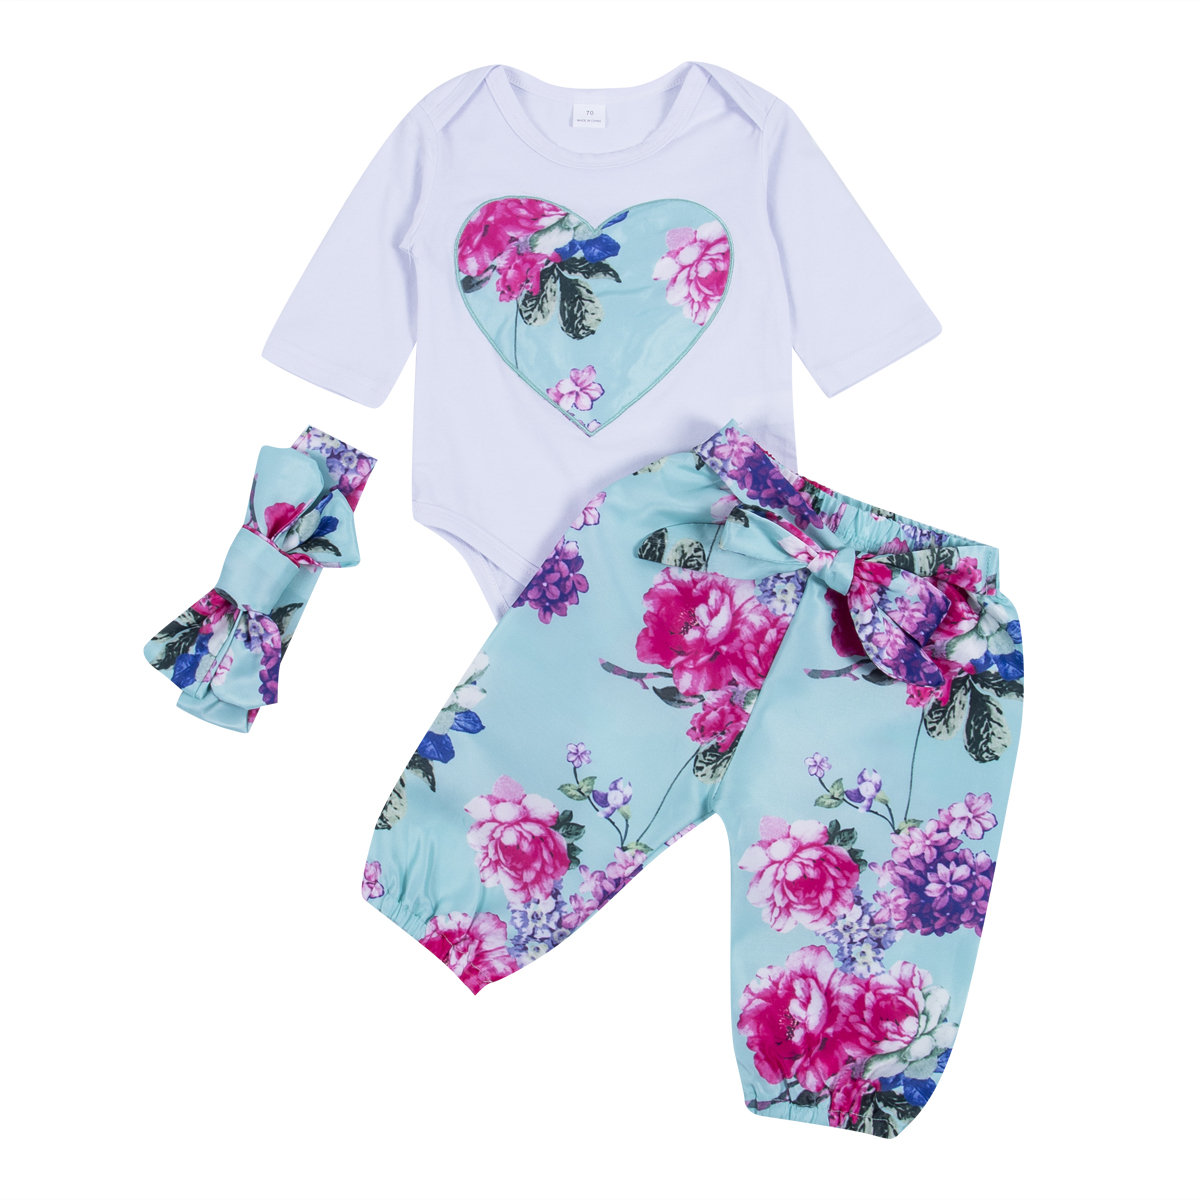 Autumn Baby Clothing 3pcs Newborn Kid Baby Girl Floral Clothes Romper +Pants +Headband Outfits Clothing Set